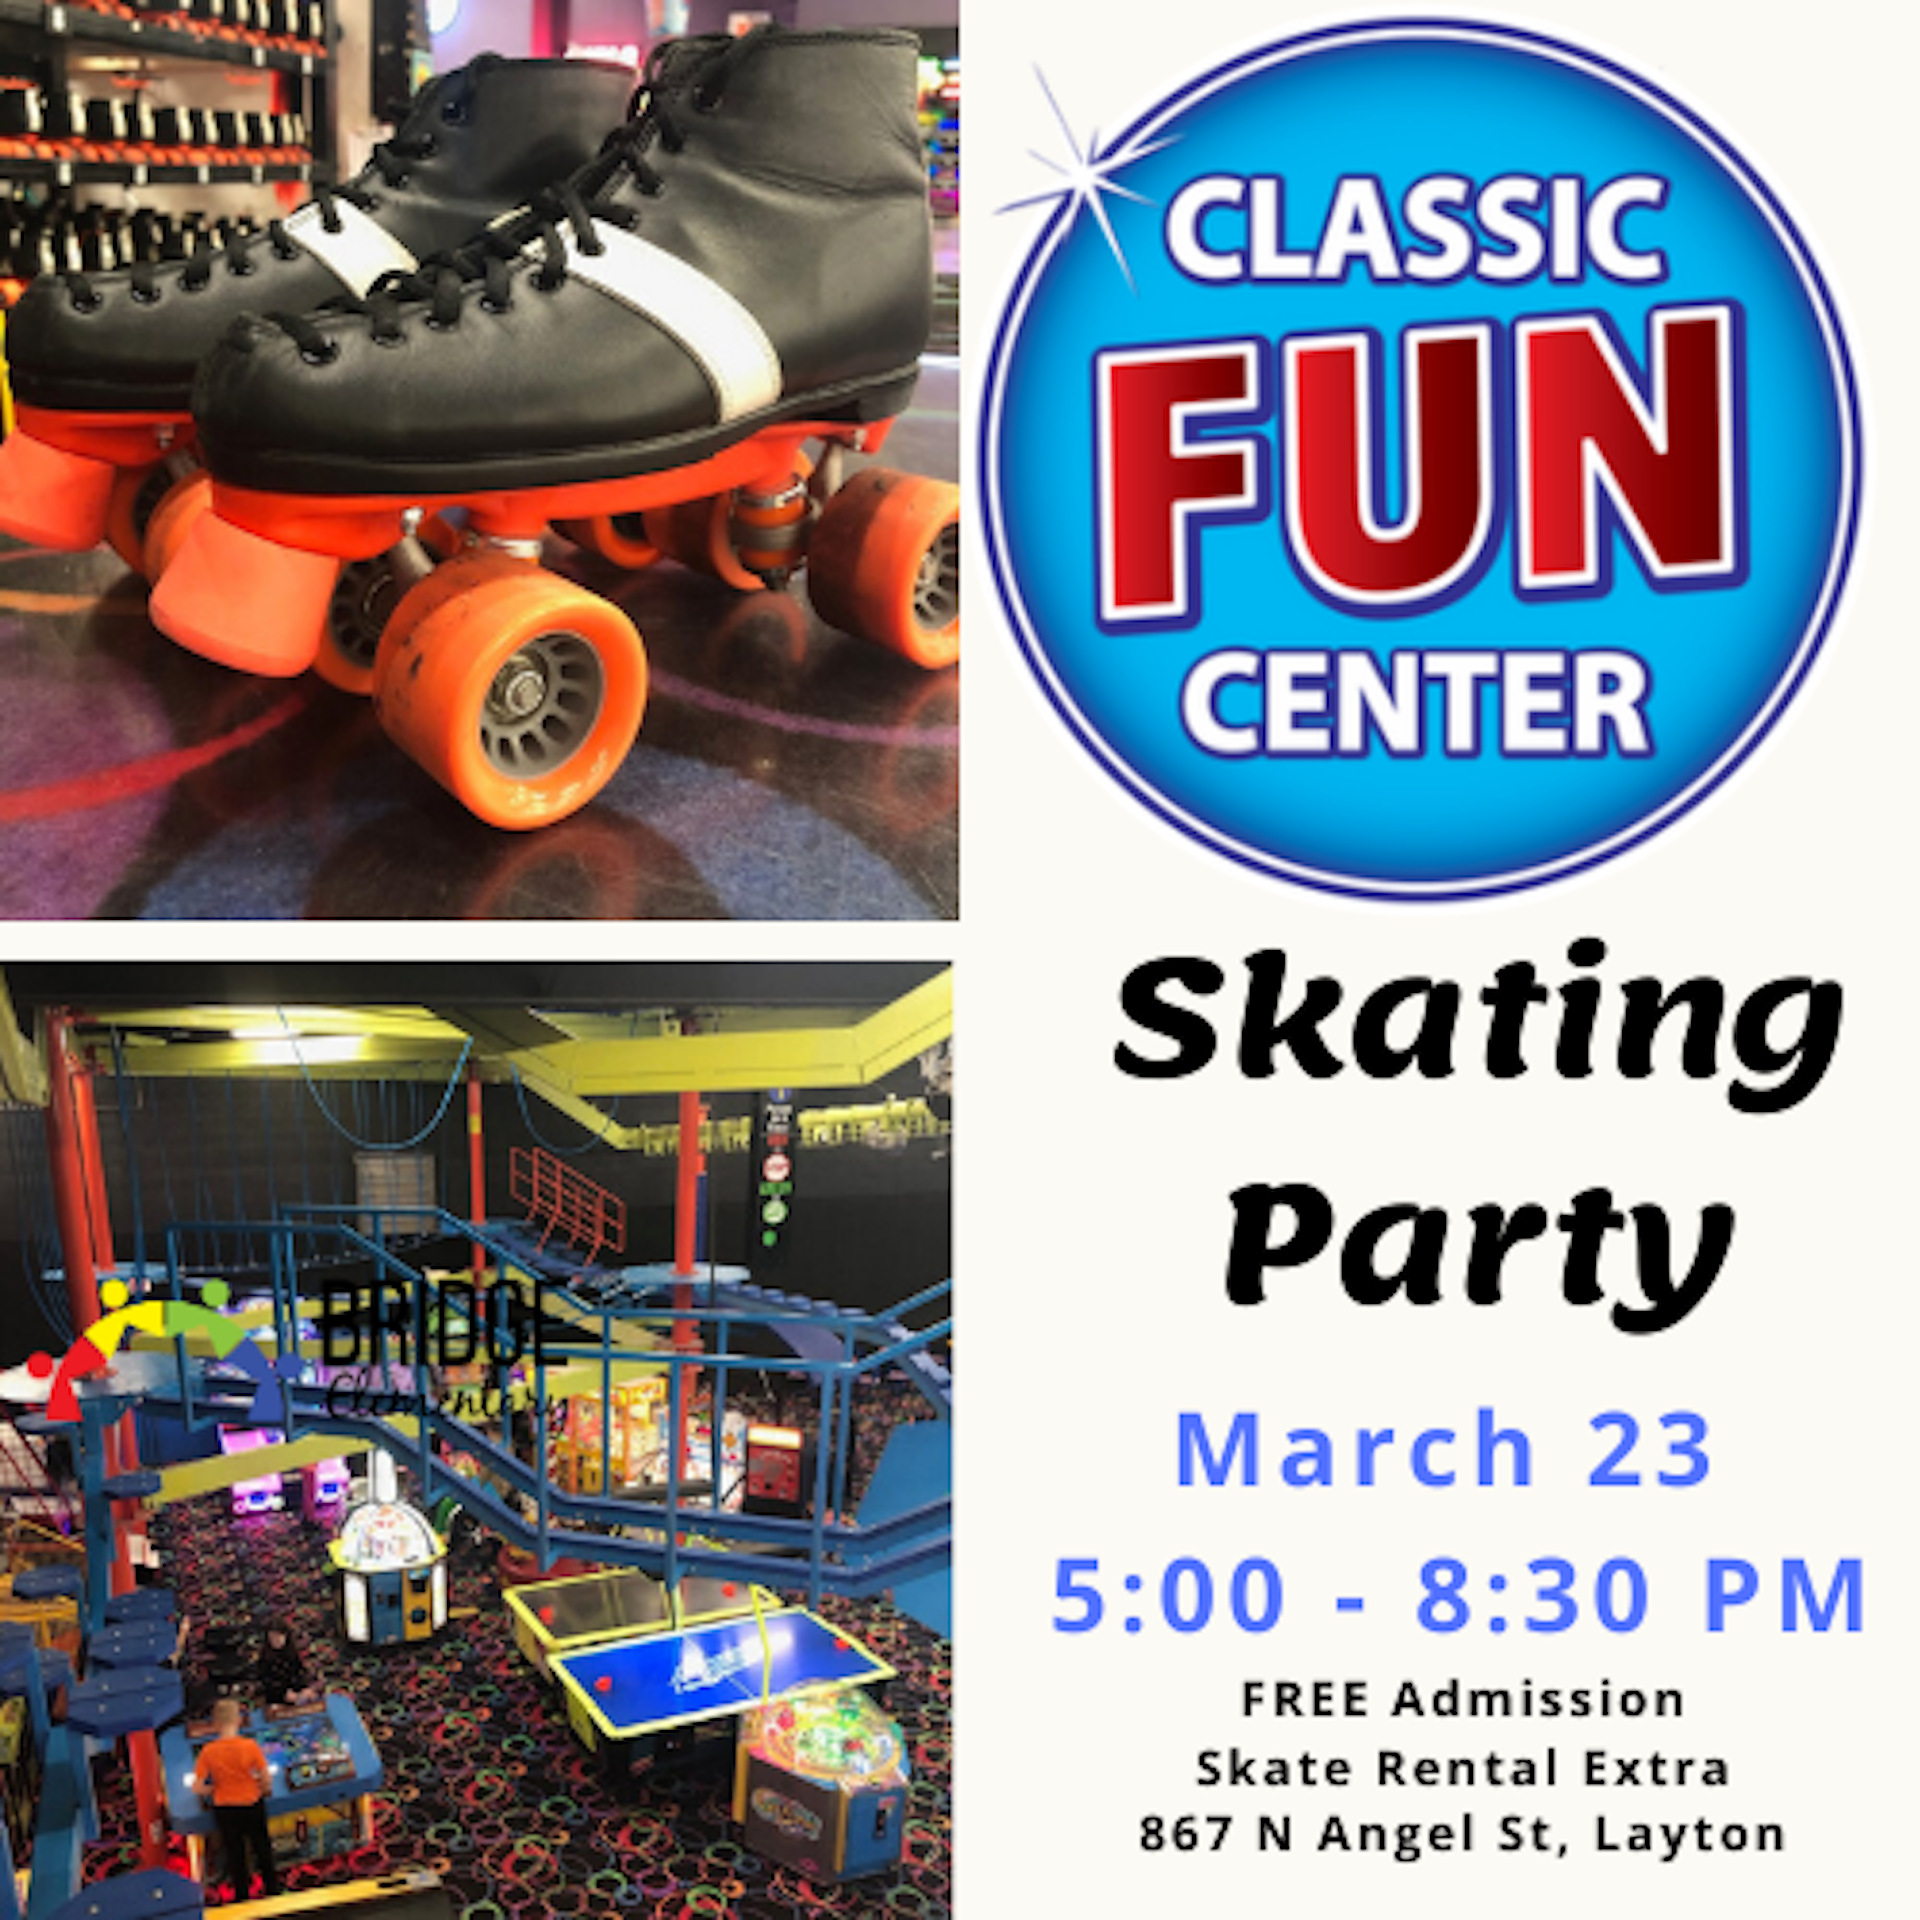 Invitation to skating party march 23 5:00 pm at Classic Skating in Layton